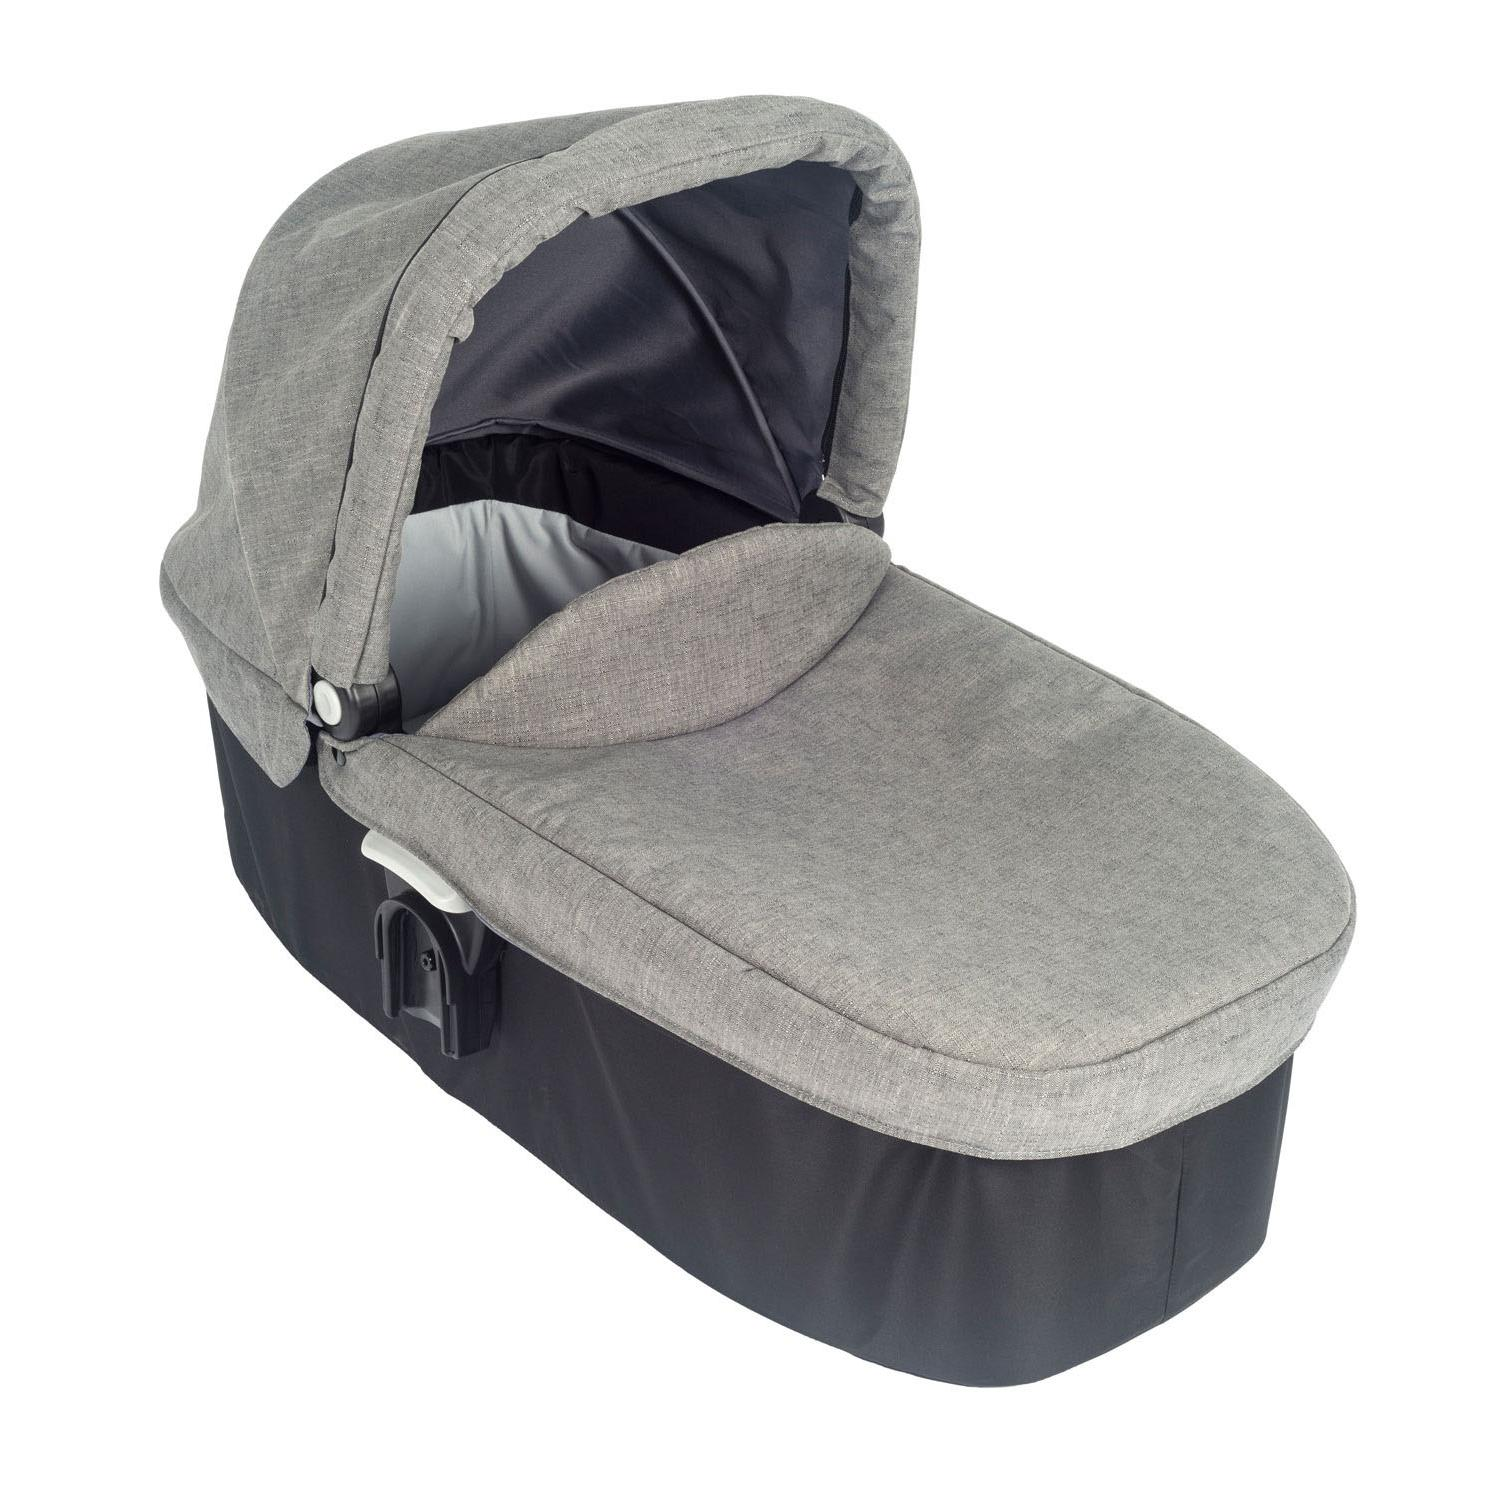 Graco Black/grey carrycot - graco, +10 stk. på lager på pixizoo